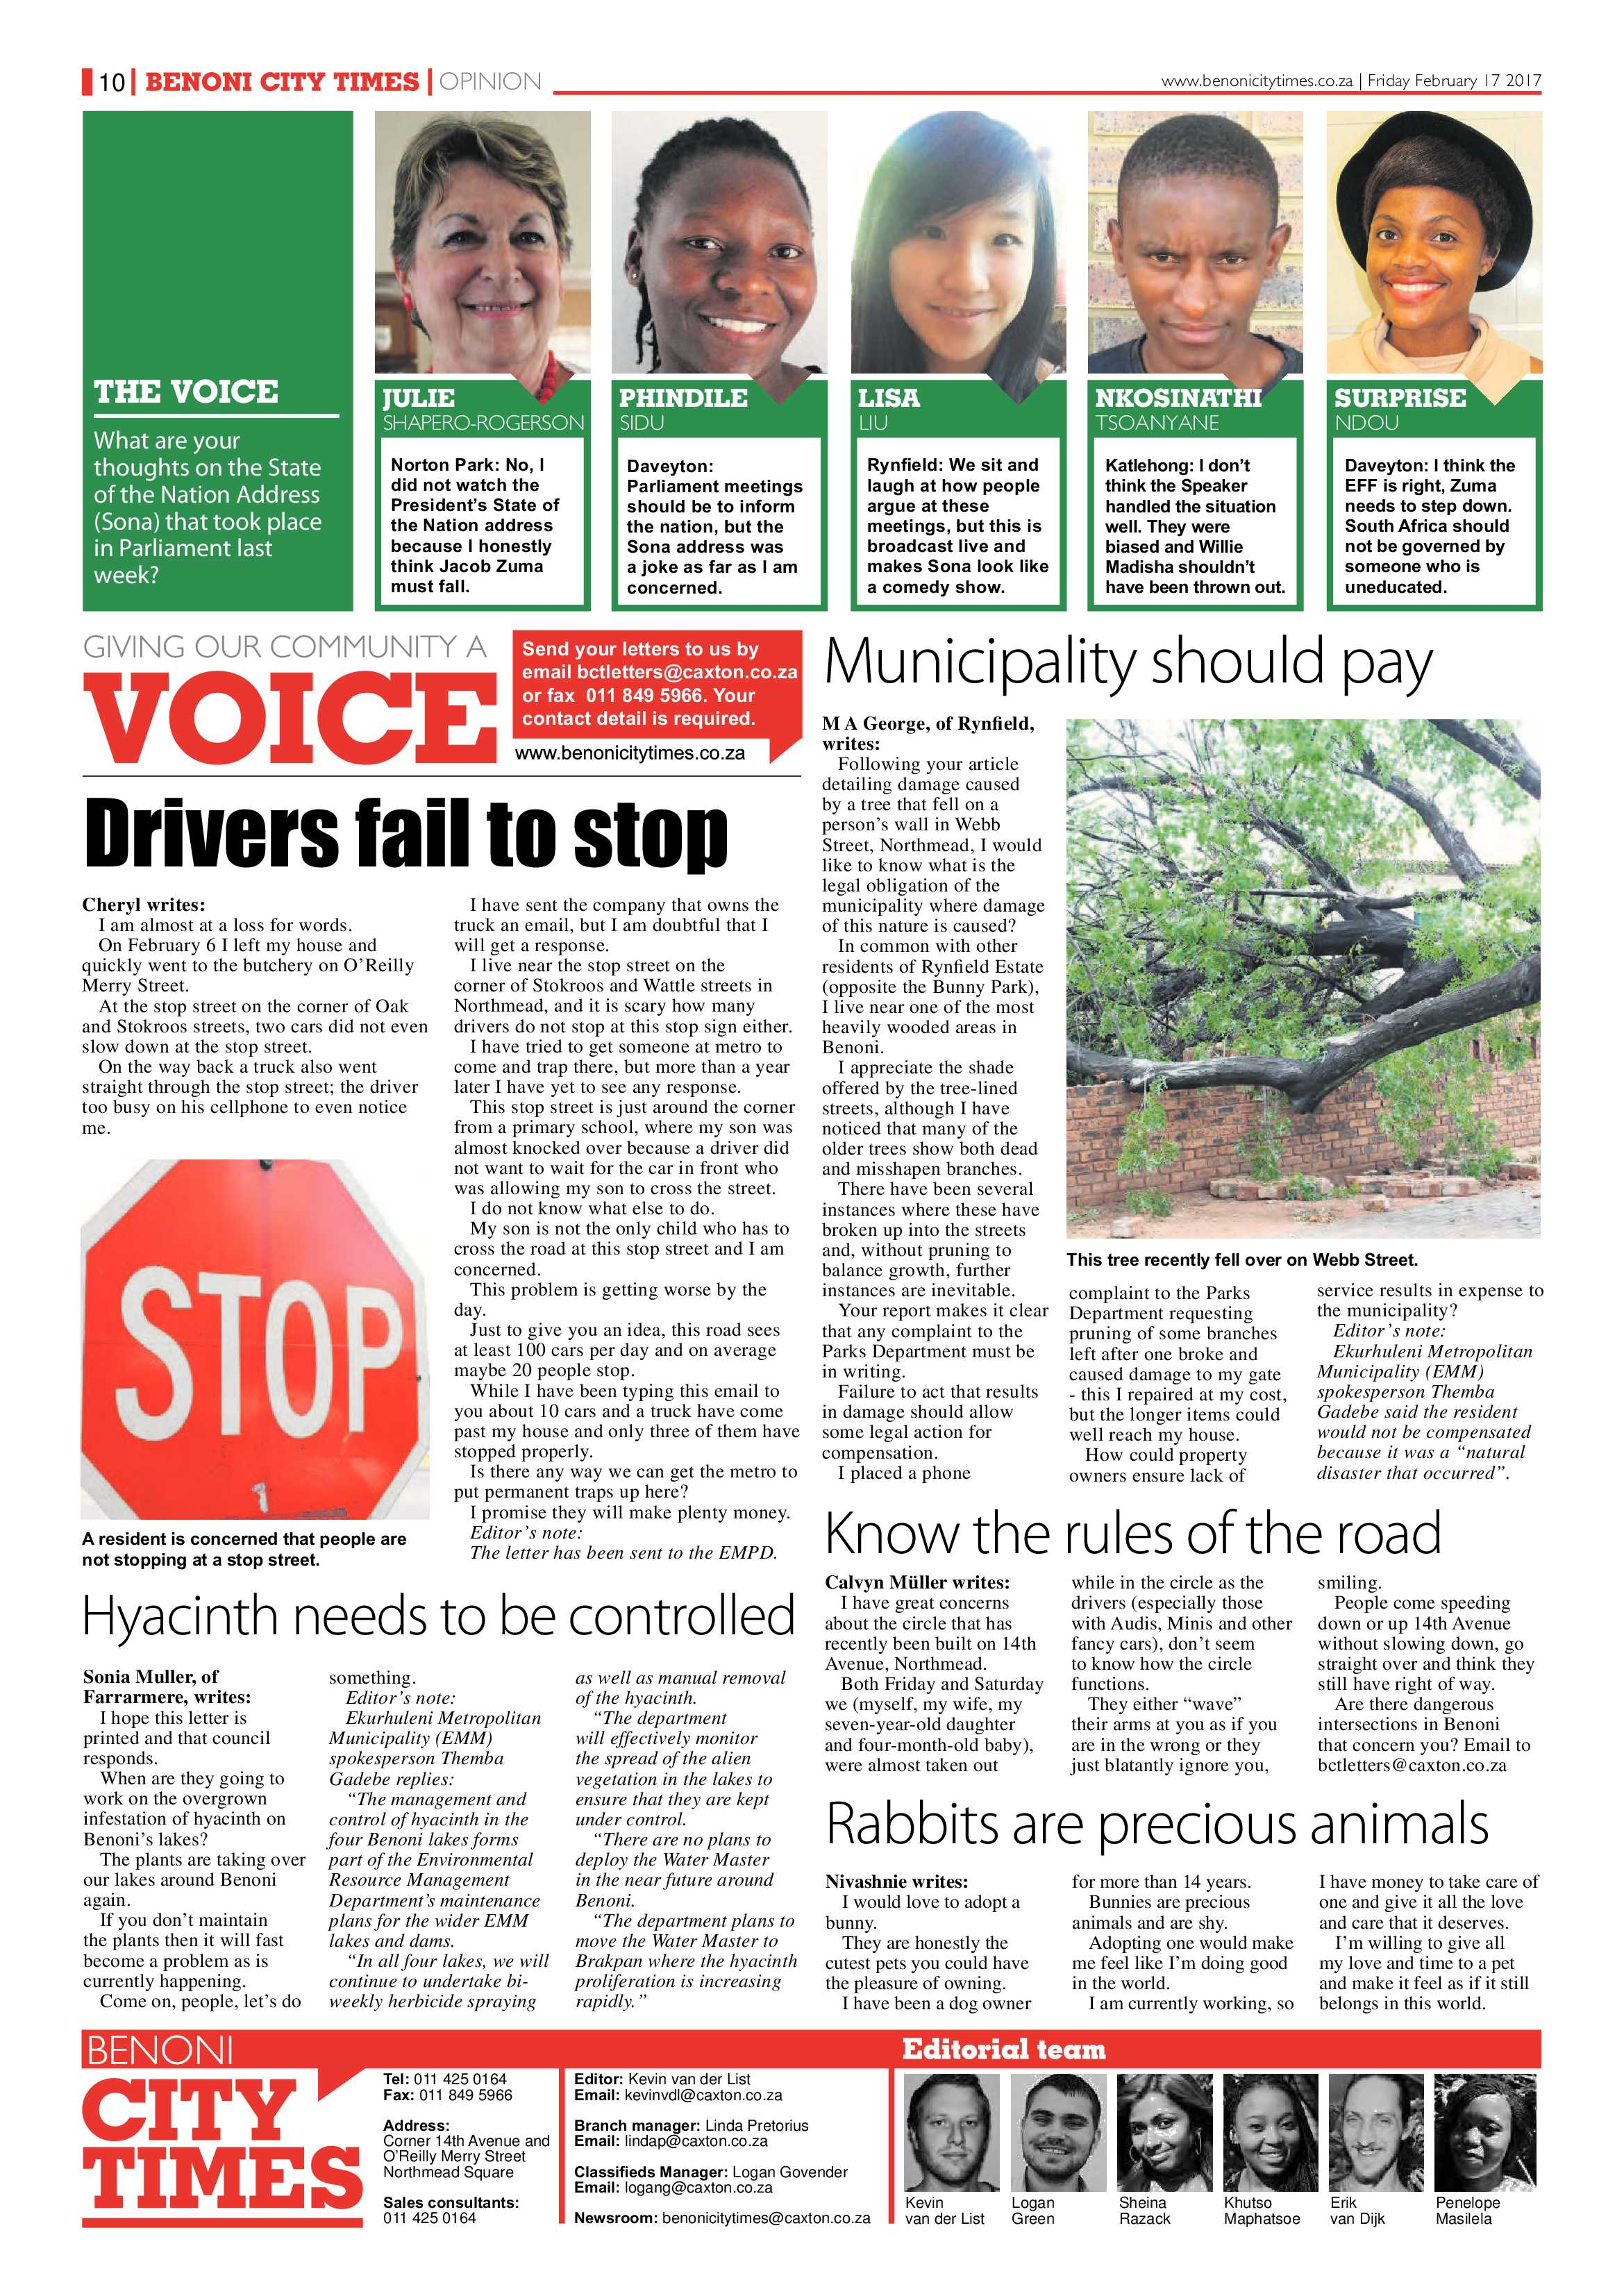 benoni-city-times-16-february-2017-epapers-page-10